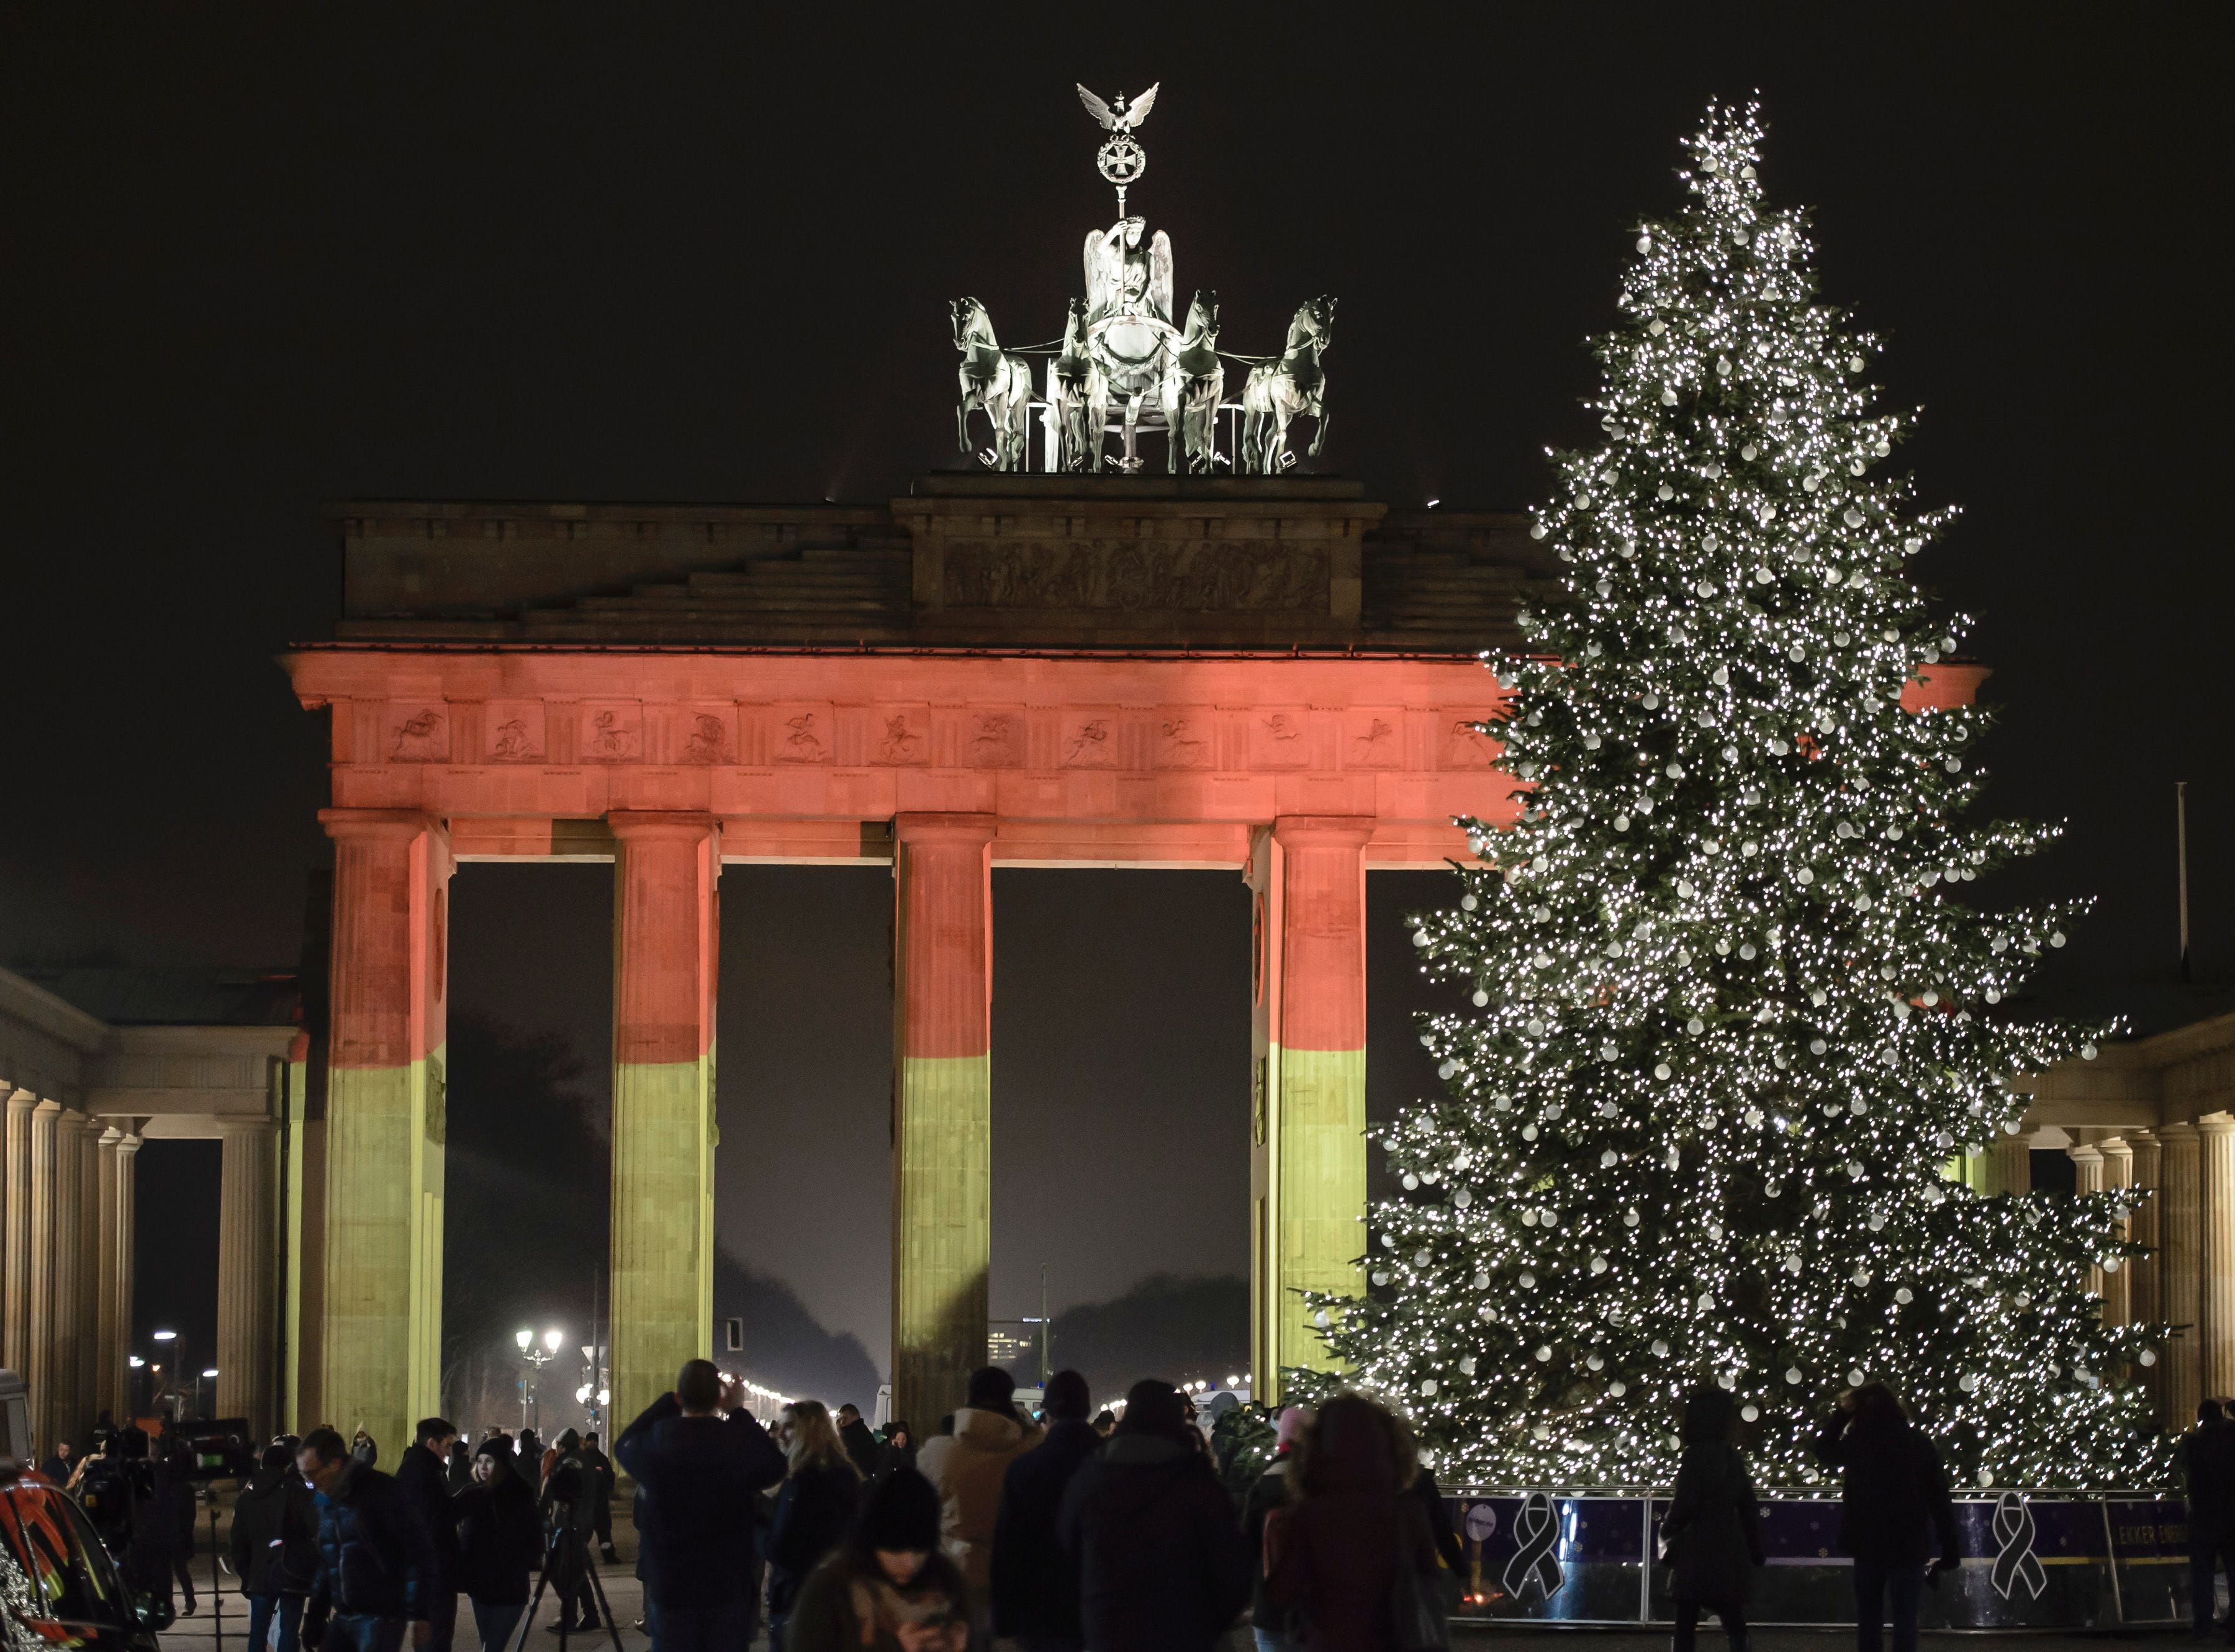 """The Brandenburg Gate is seen in the colors of the German flag in Berlin on December 20, 2016 one day after a truck crashed into a Christmas market. German police said they were treating as """"a probable terrorist attack"""" the killing of 12 people when the speeding lorry cut a bloody swath through the packed Berlin Christmas market. / AFP PHOTO / CLEMENS BILANCLEMENS BILAN/AFP/Getty Images ORG XMIT: 36 ORIG FILE ID: AFP_JA9DT"""